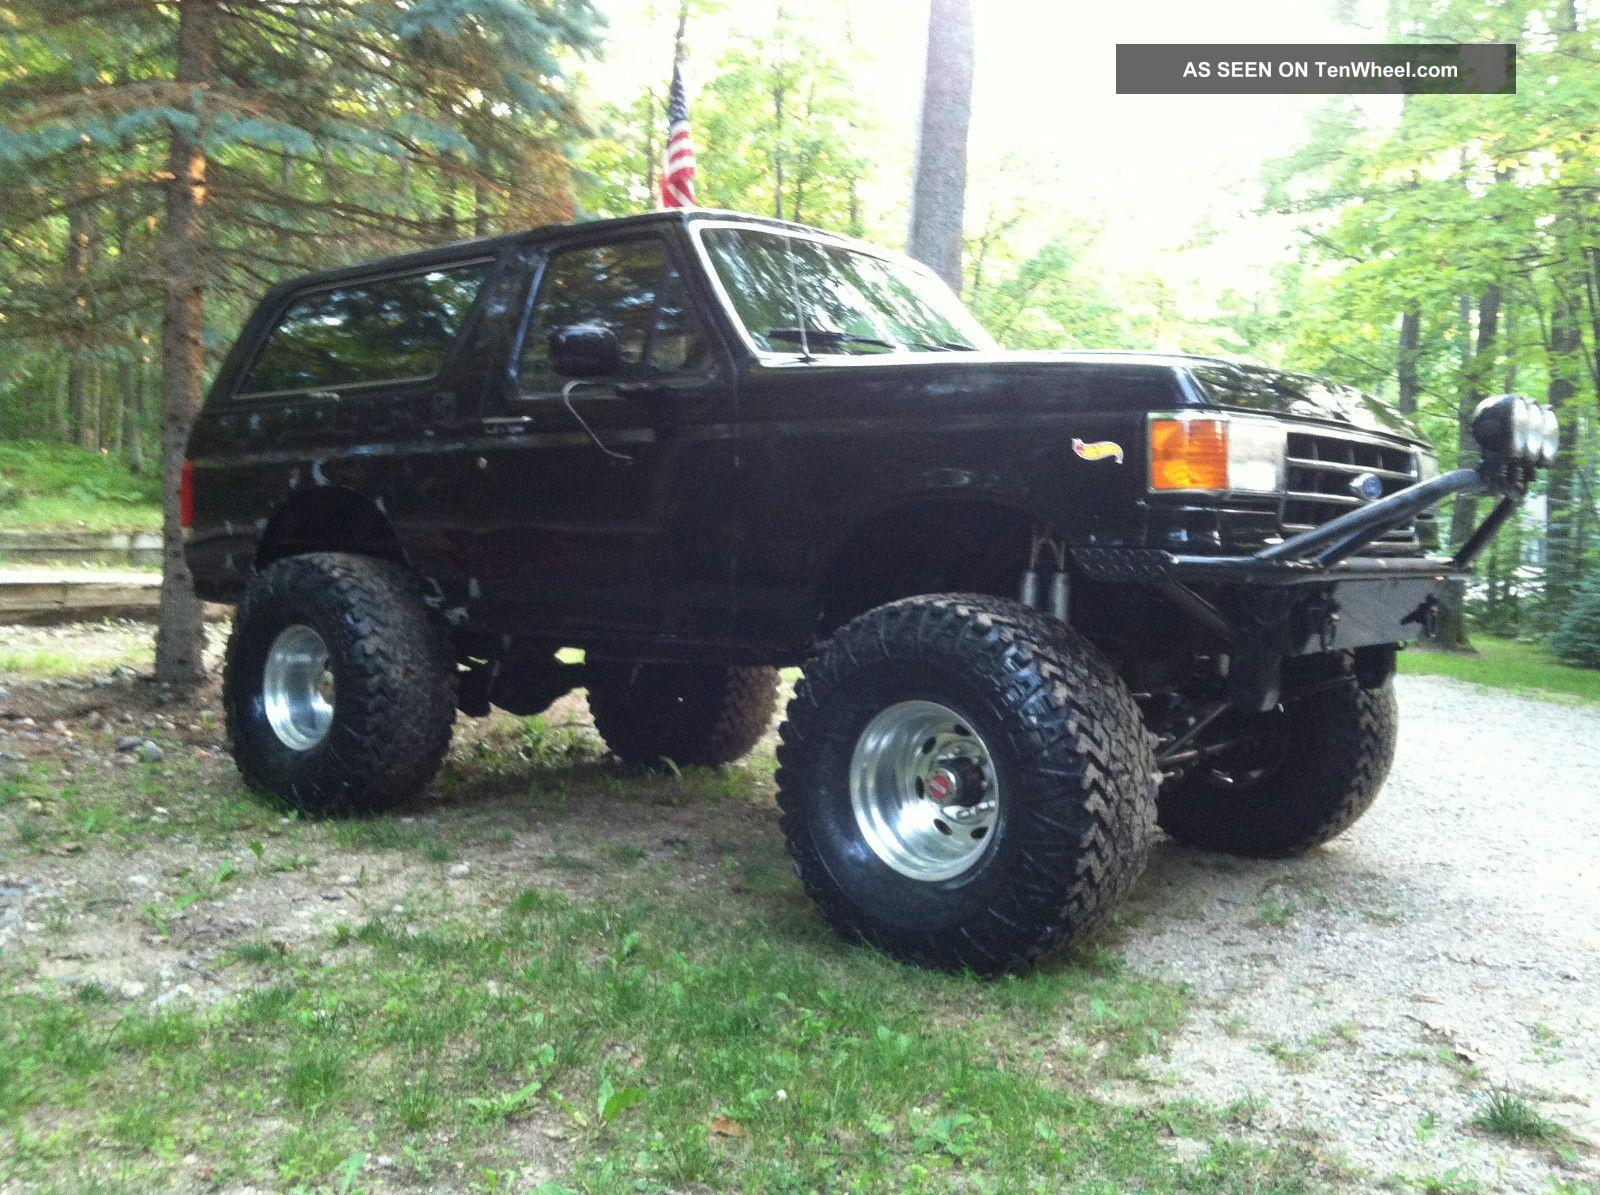 1990 Ford Bronco Ii Information And Photos Zombiedrive 1989 2 Wiring Diagram 8 800 1024 1280 1600 Origin